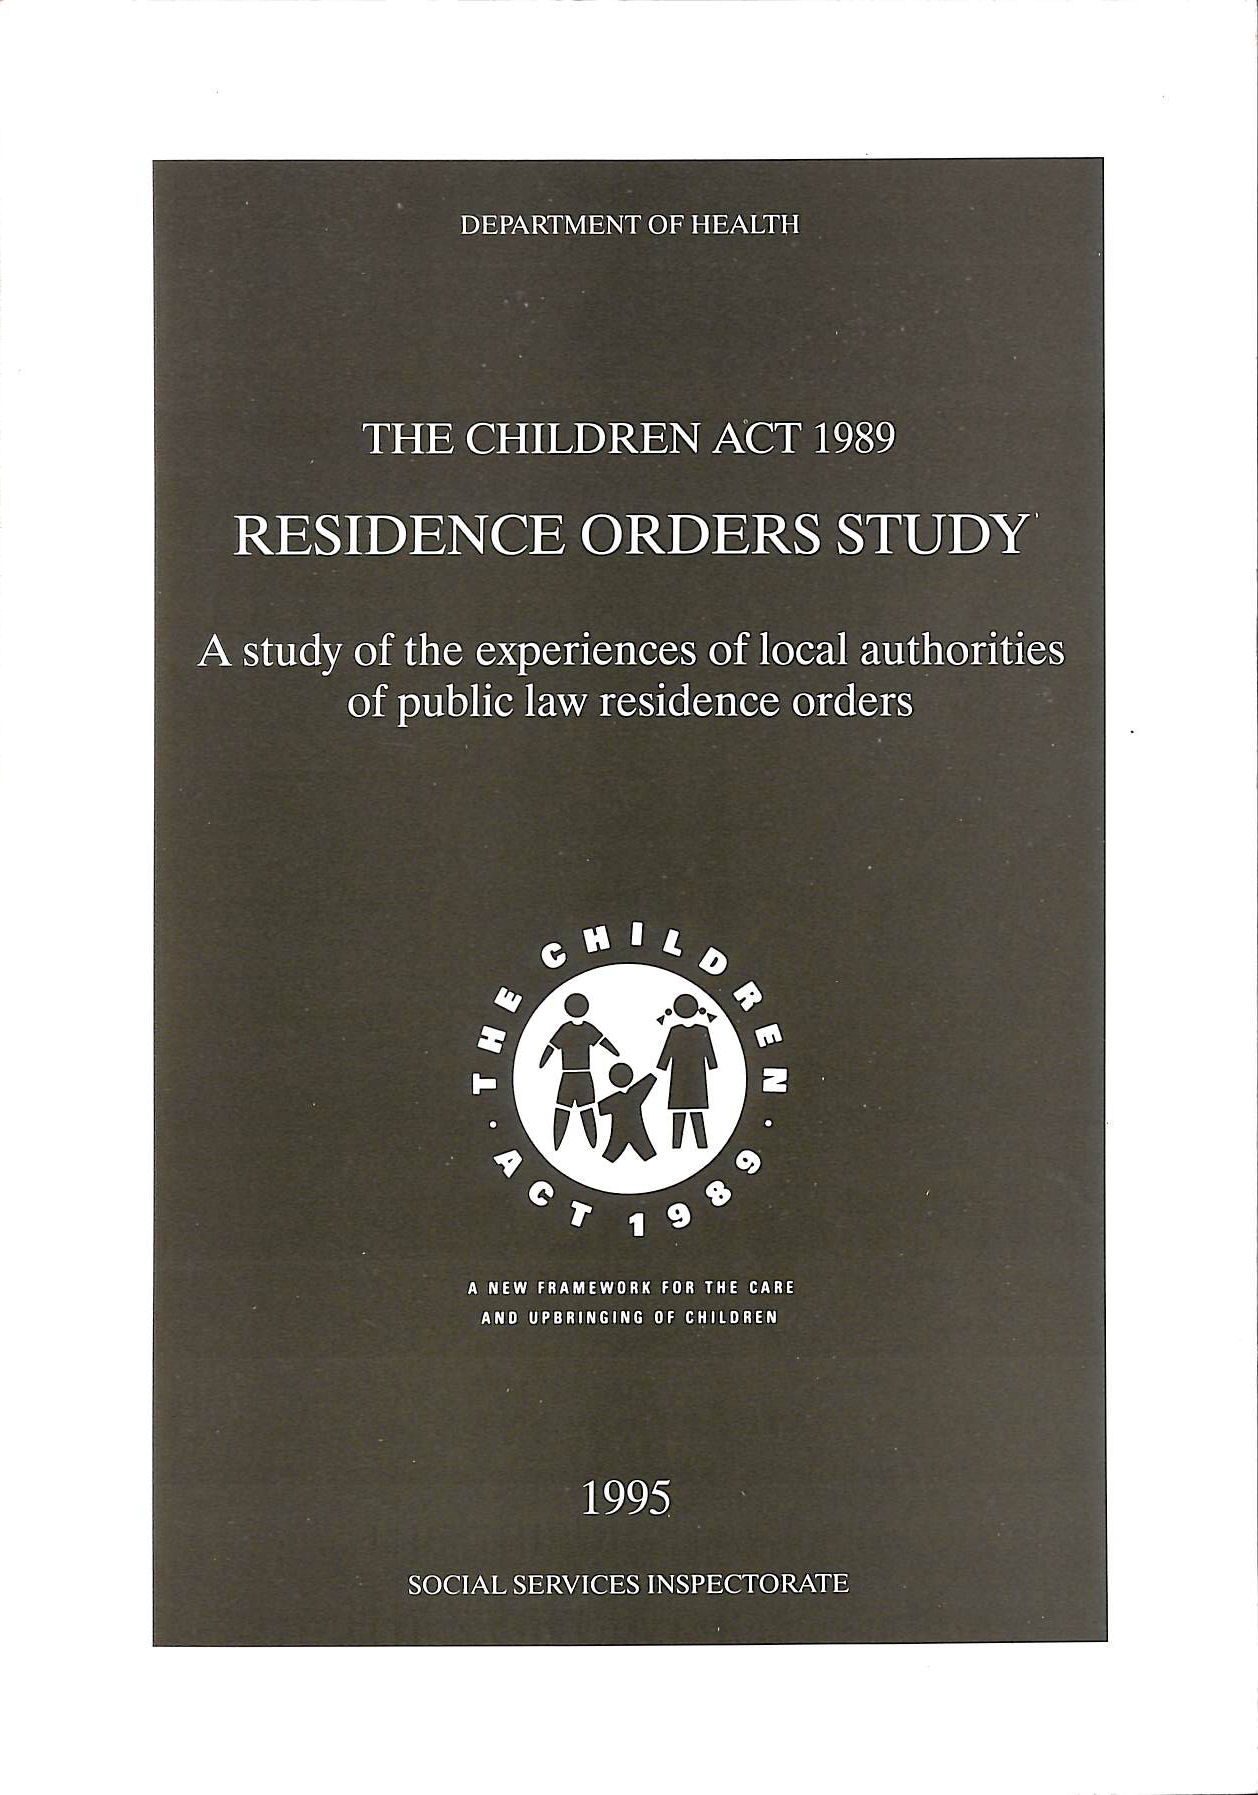 Image for The Children Act 1989: Residence Orders Study; a Study of the Experiences of Local Authorities of Public Law Residence Orders